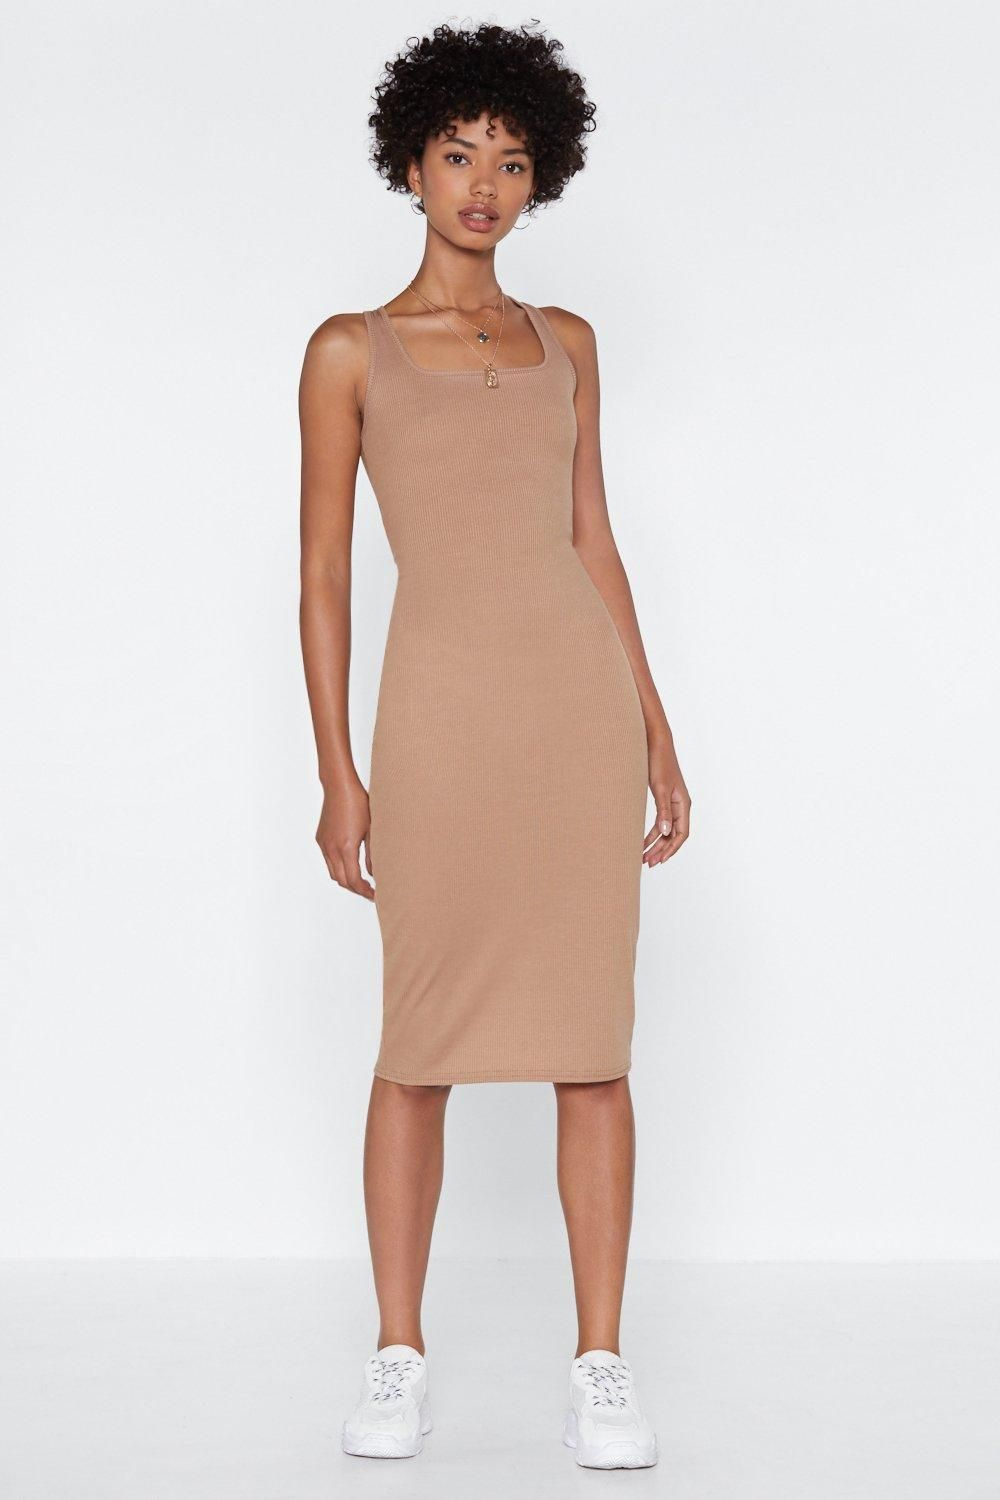 The Tight Like That Dress features a fitted 52df95ed5c03